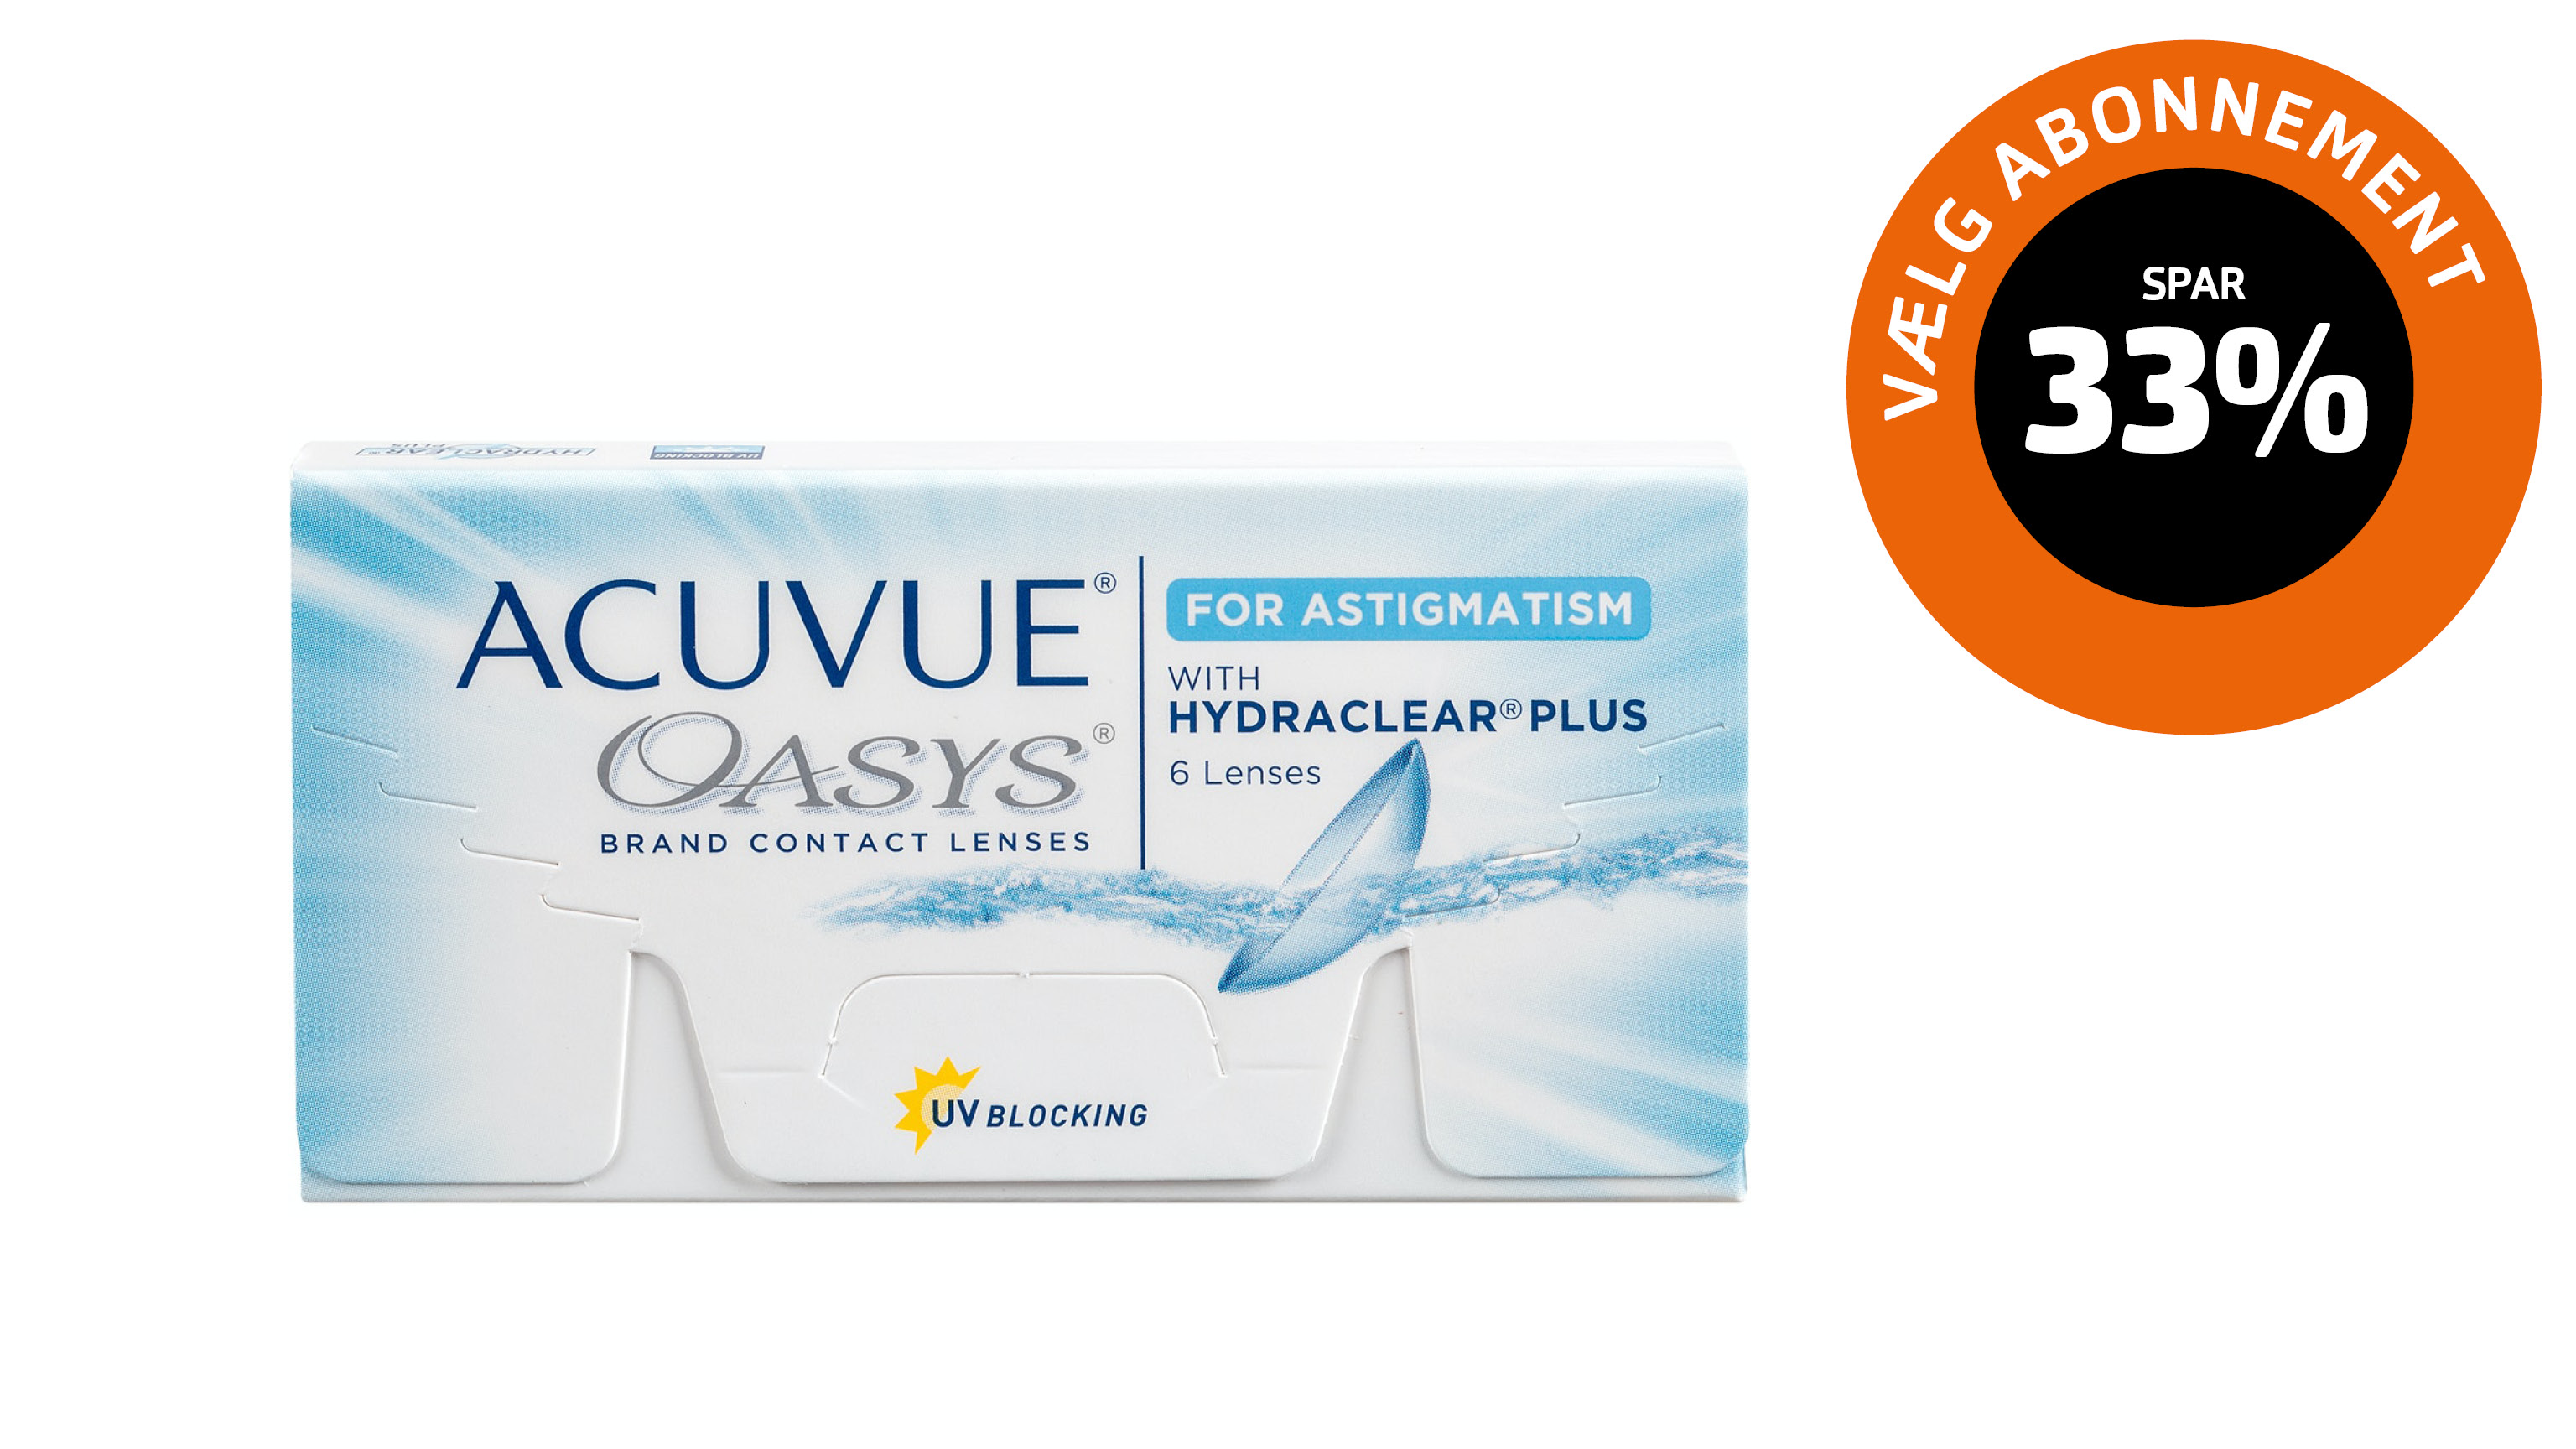 Front ACUVUE® Oasys for astigmatism